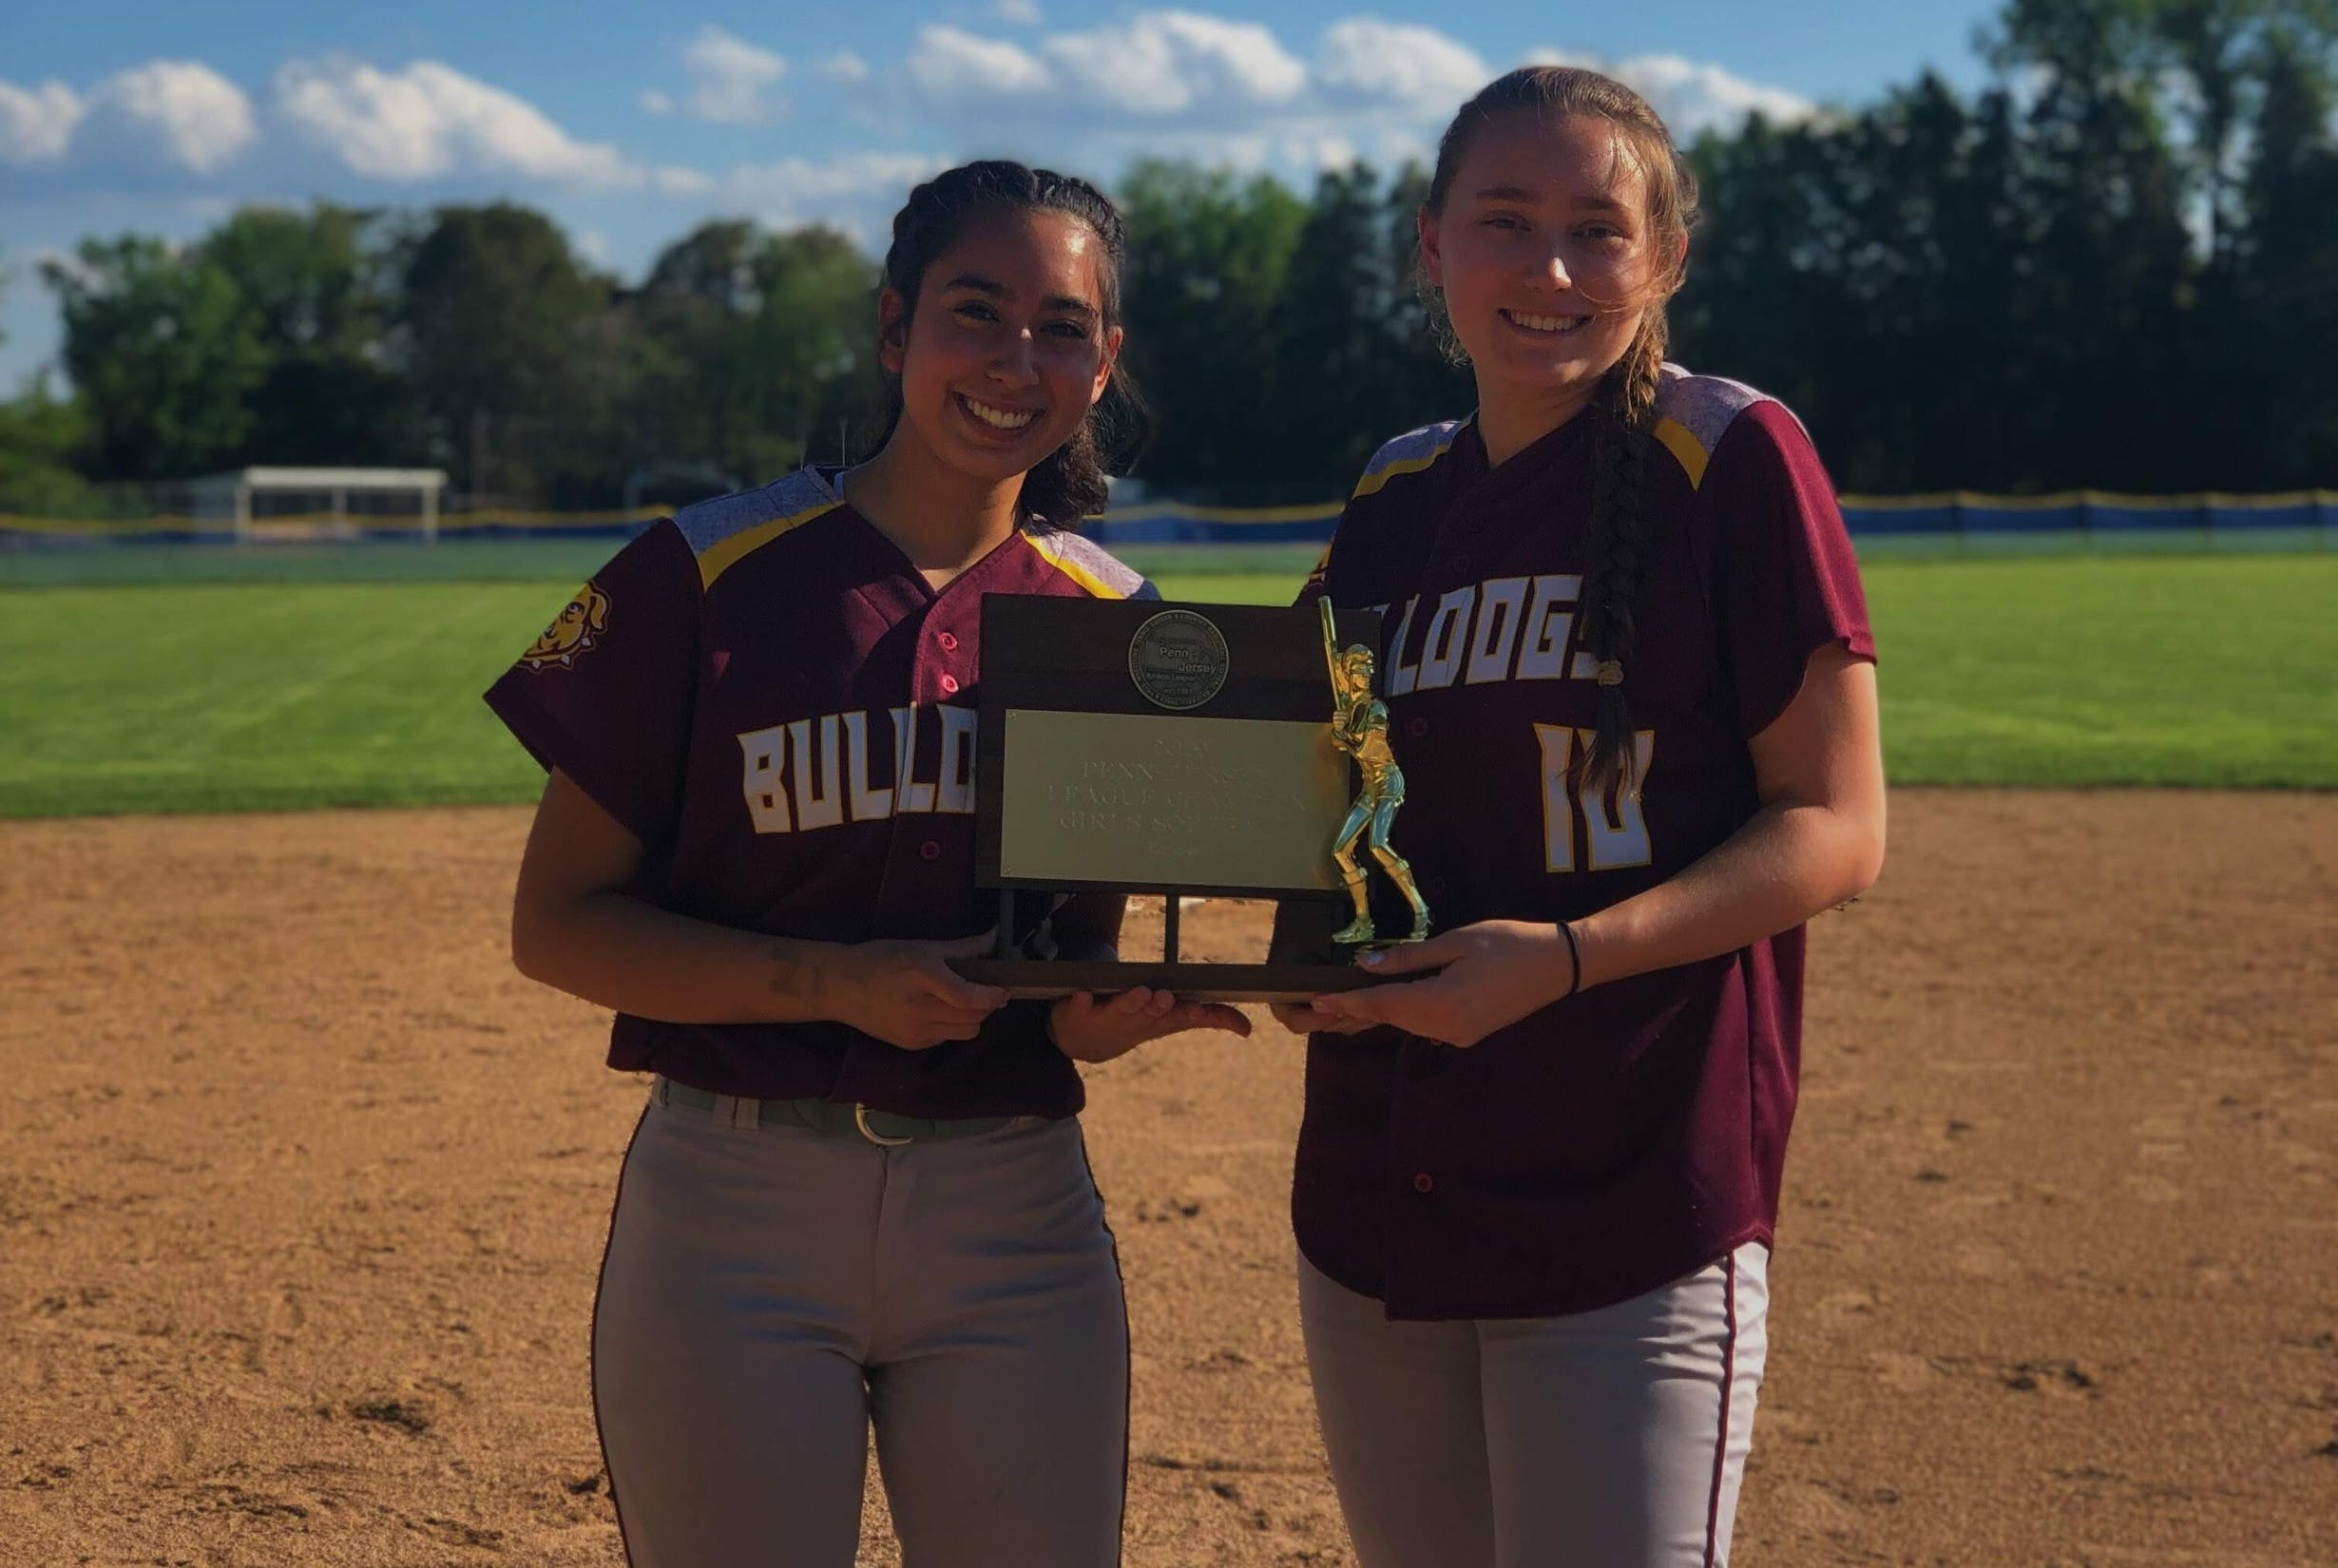 Two female softball players smiling while holding up trophies on the playing field